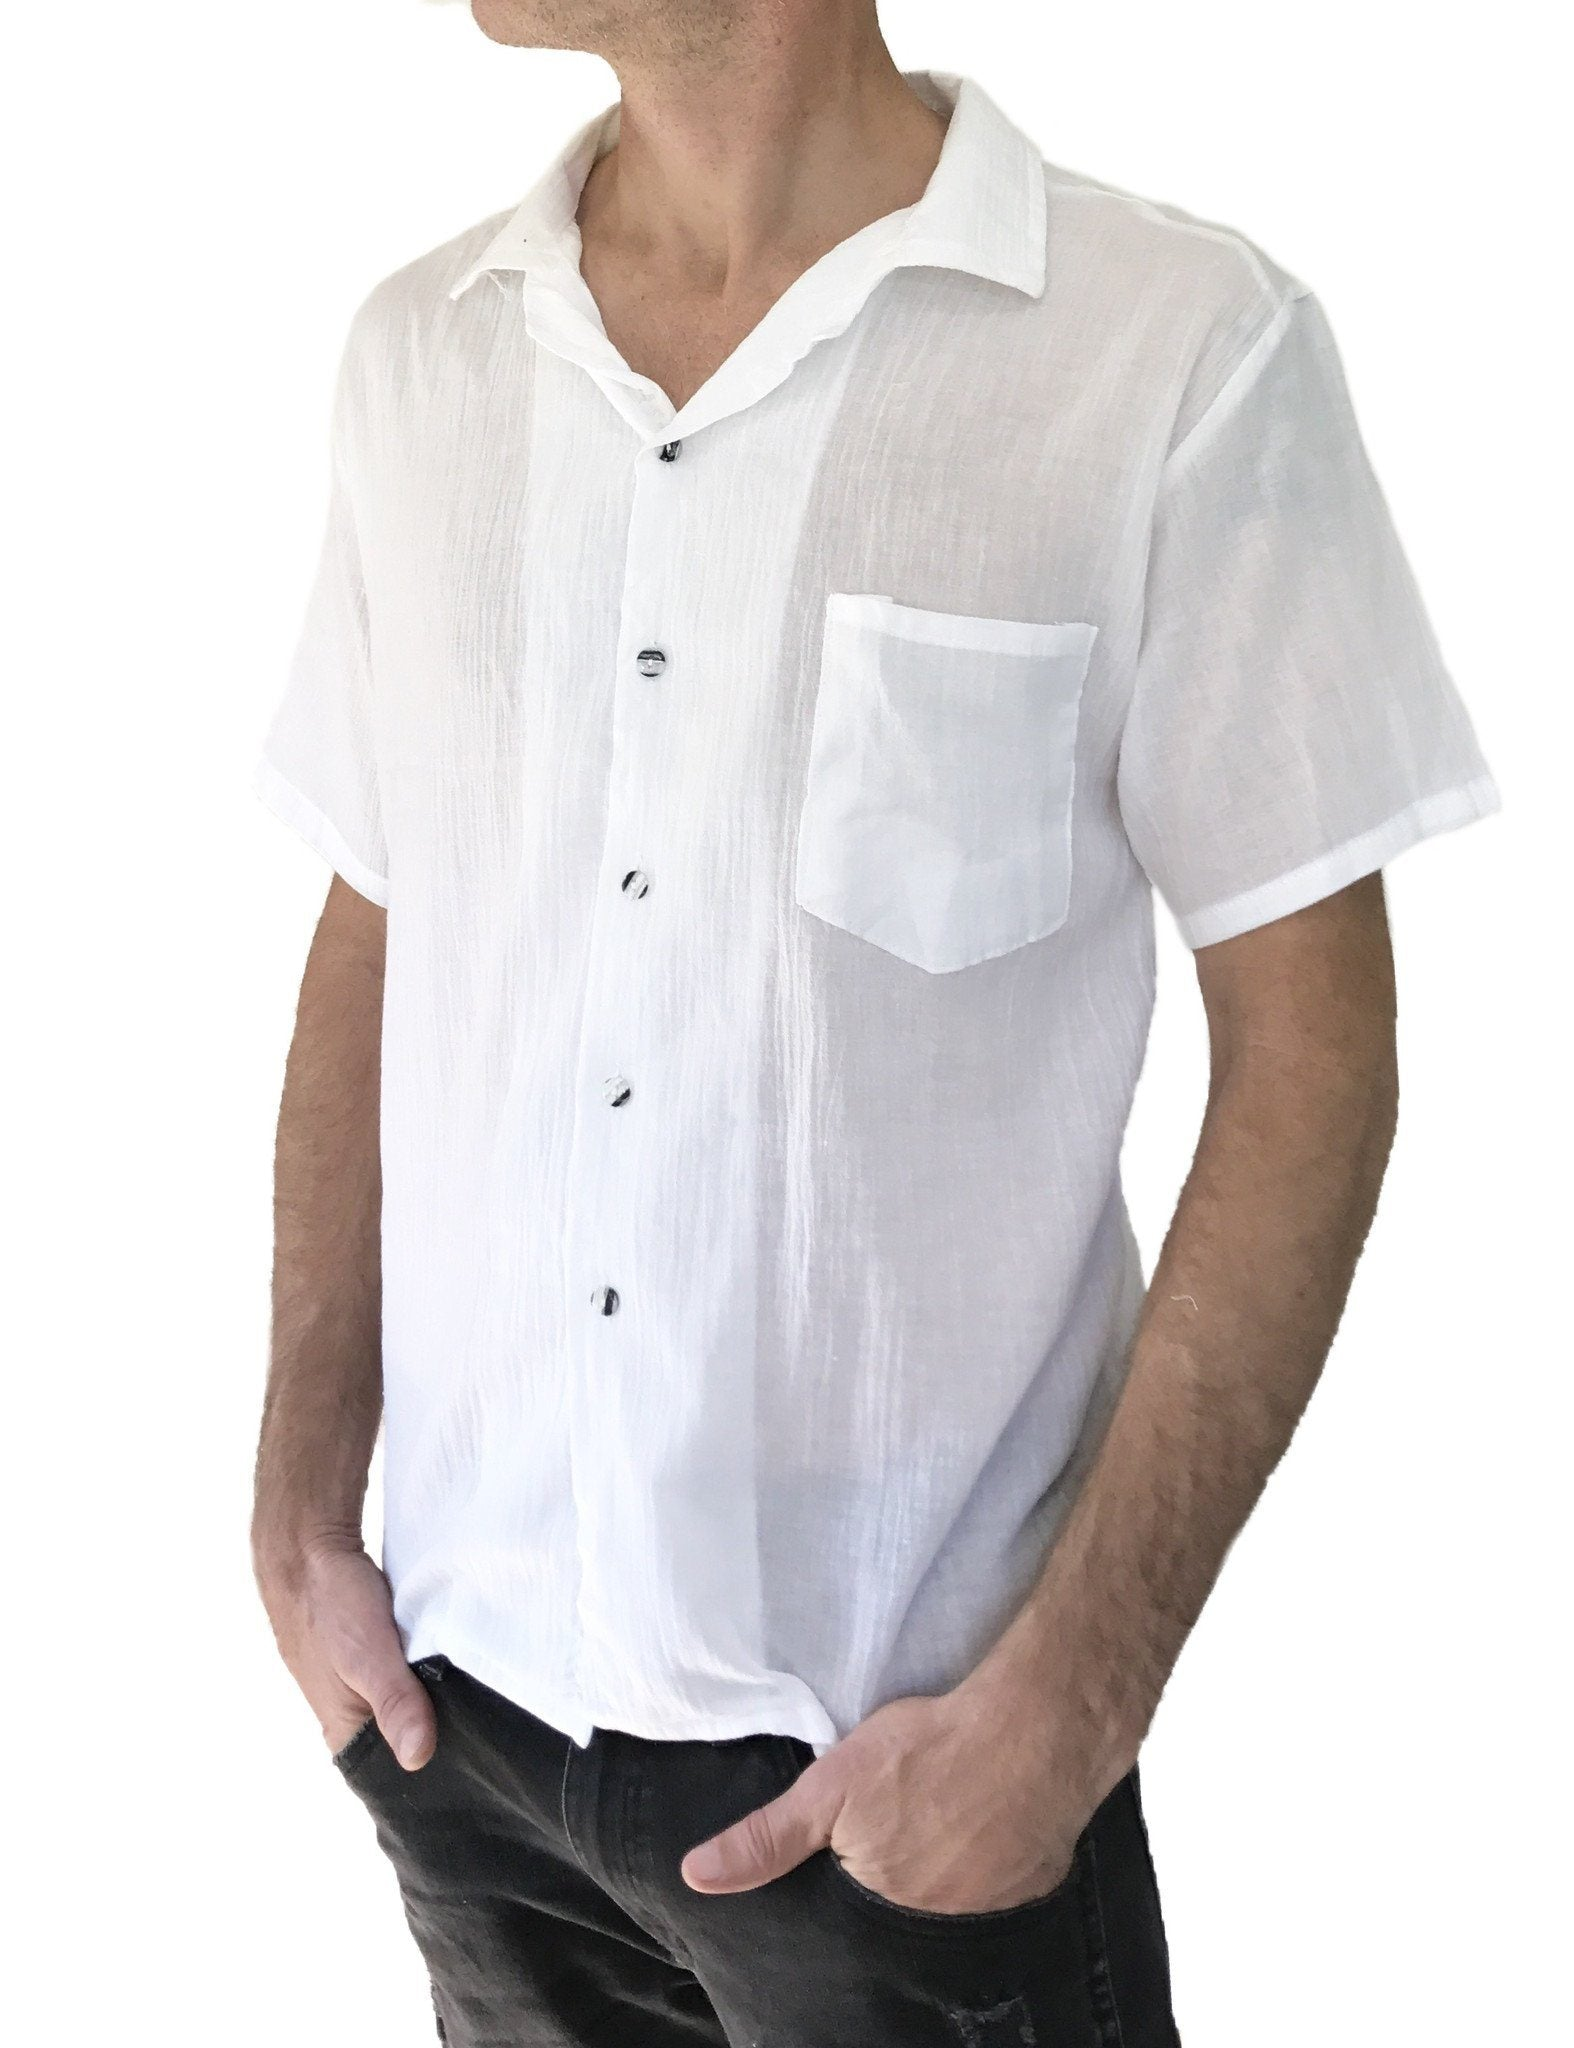 Shirt - Men's Light Weight 100% Cotton Button Thai Hippie Shirt